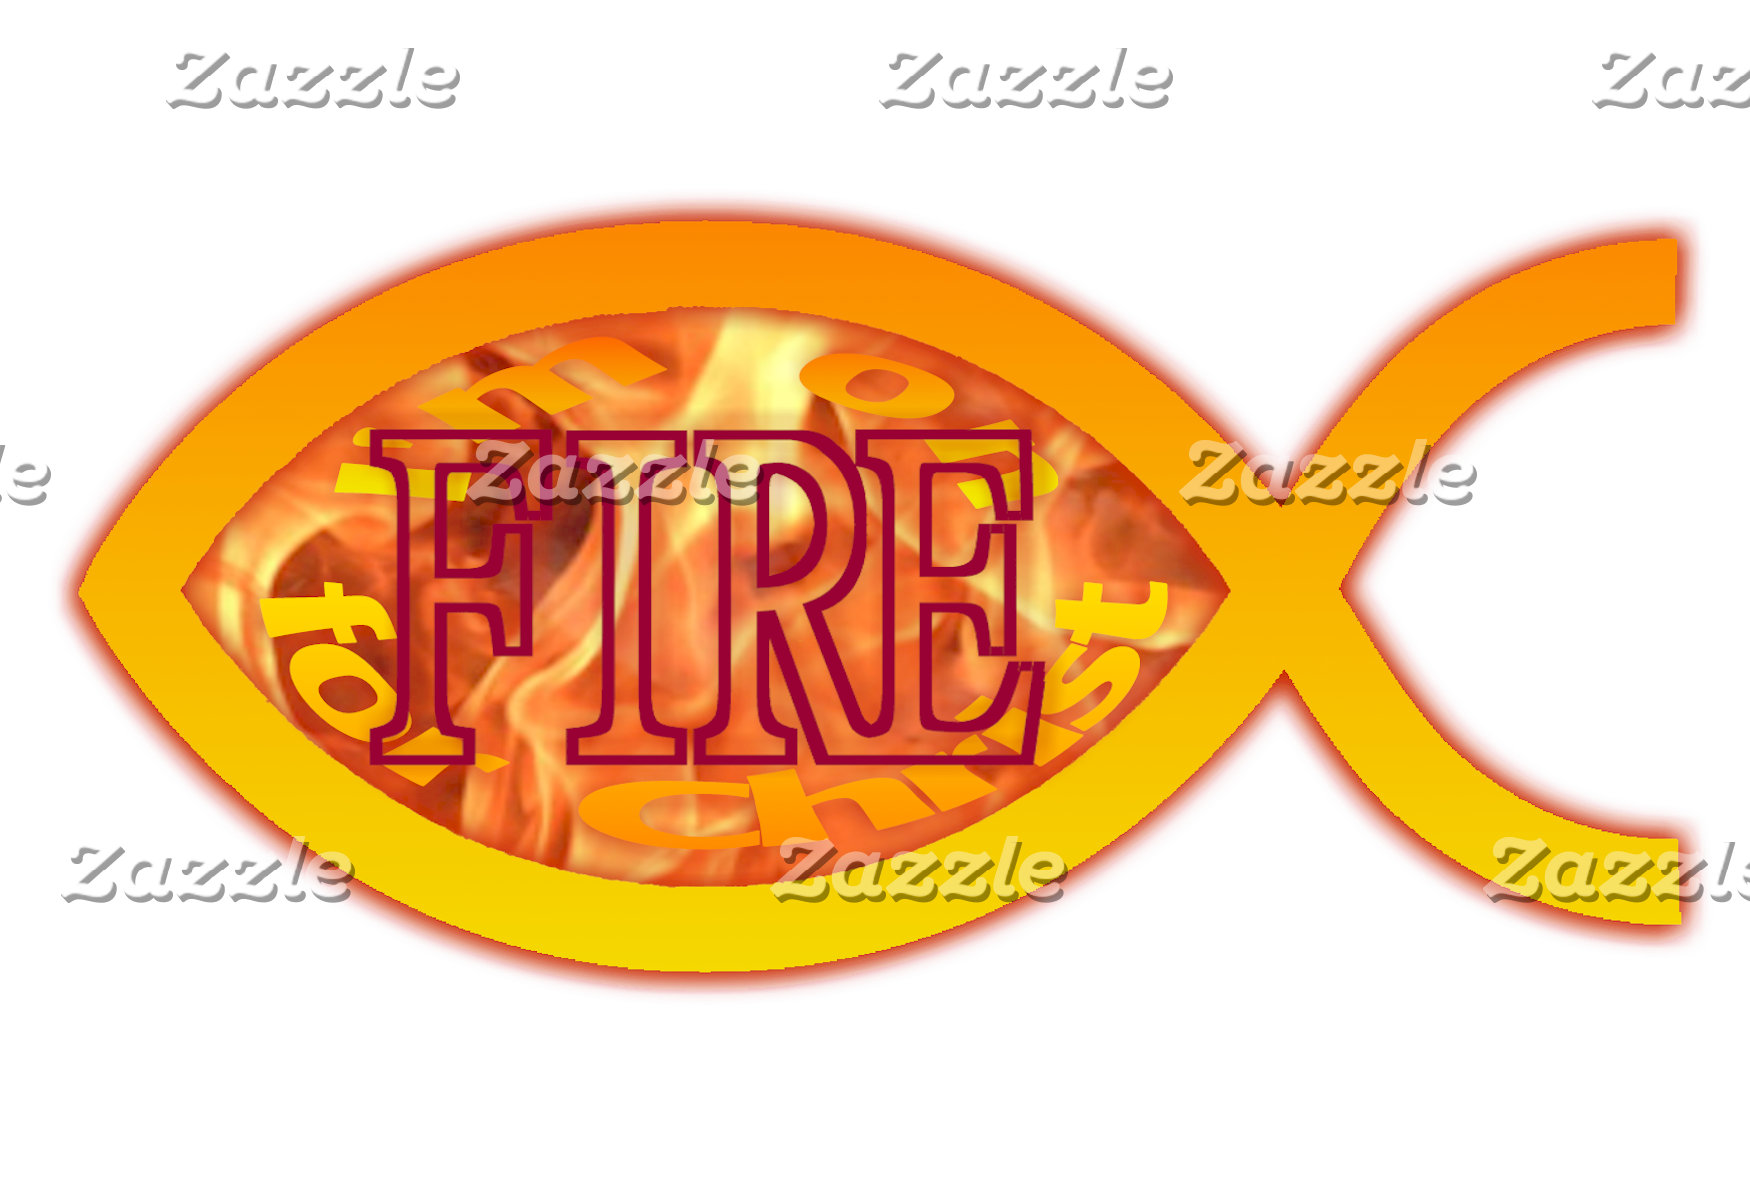 I'm on FIRE for Christ - Christian Fish Symbol